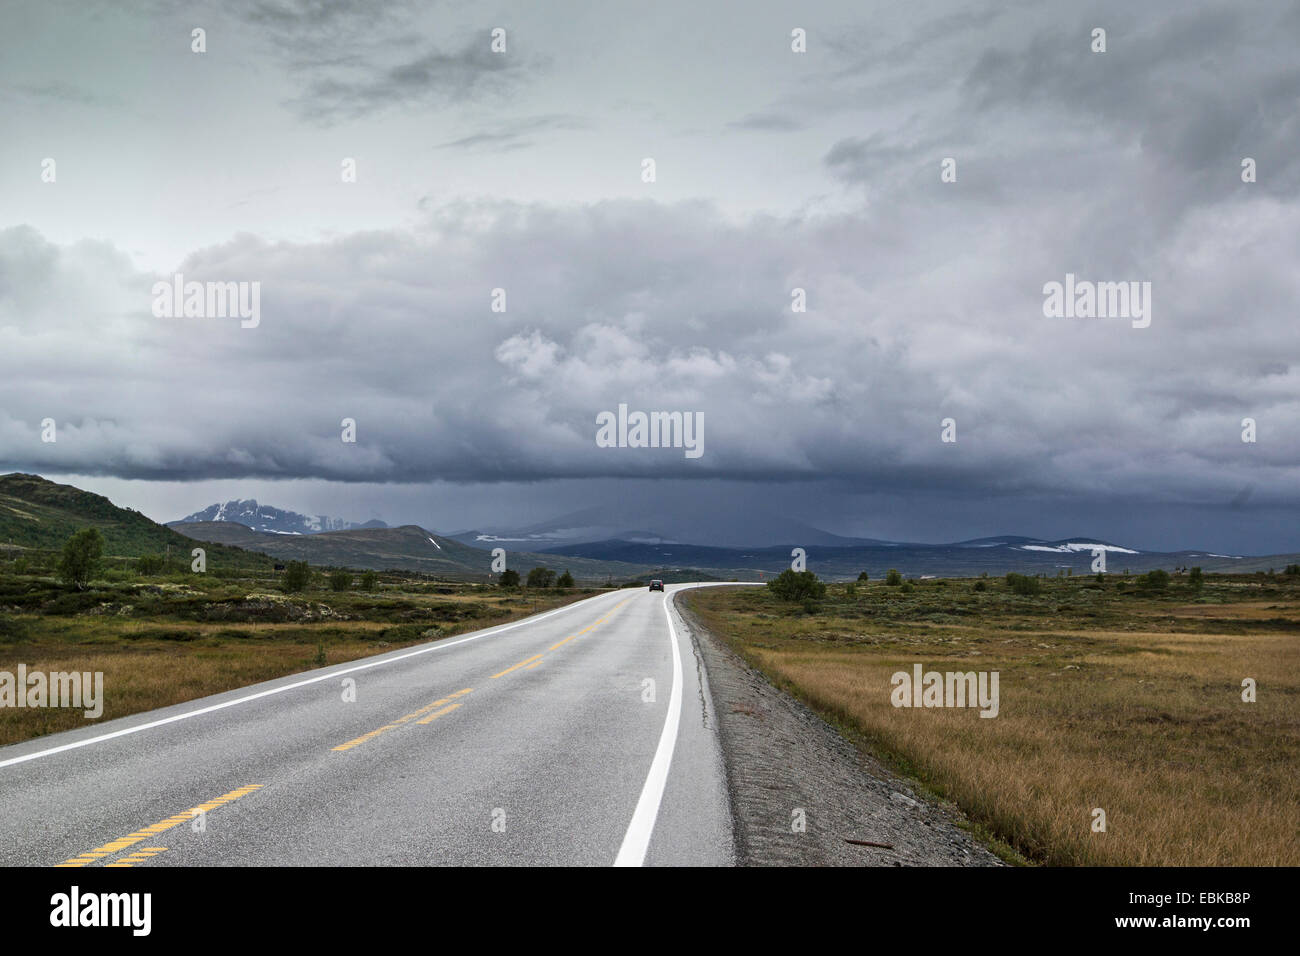 rain clouds over country road, Norway, Dovrefjell Sunndalsfjella National Park, Kongsvoll - Stock Image